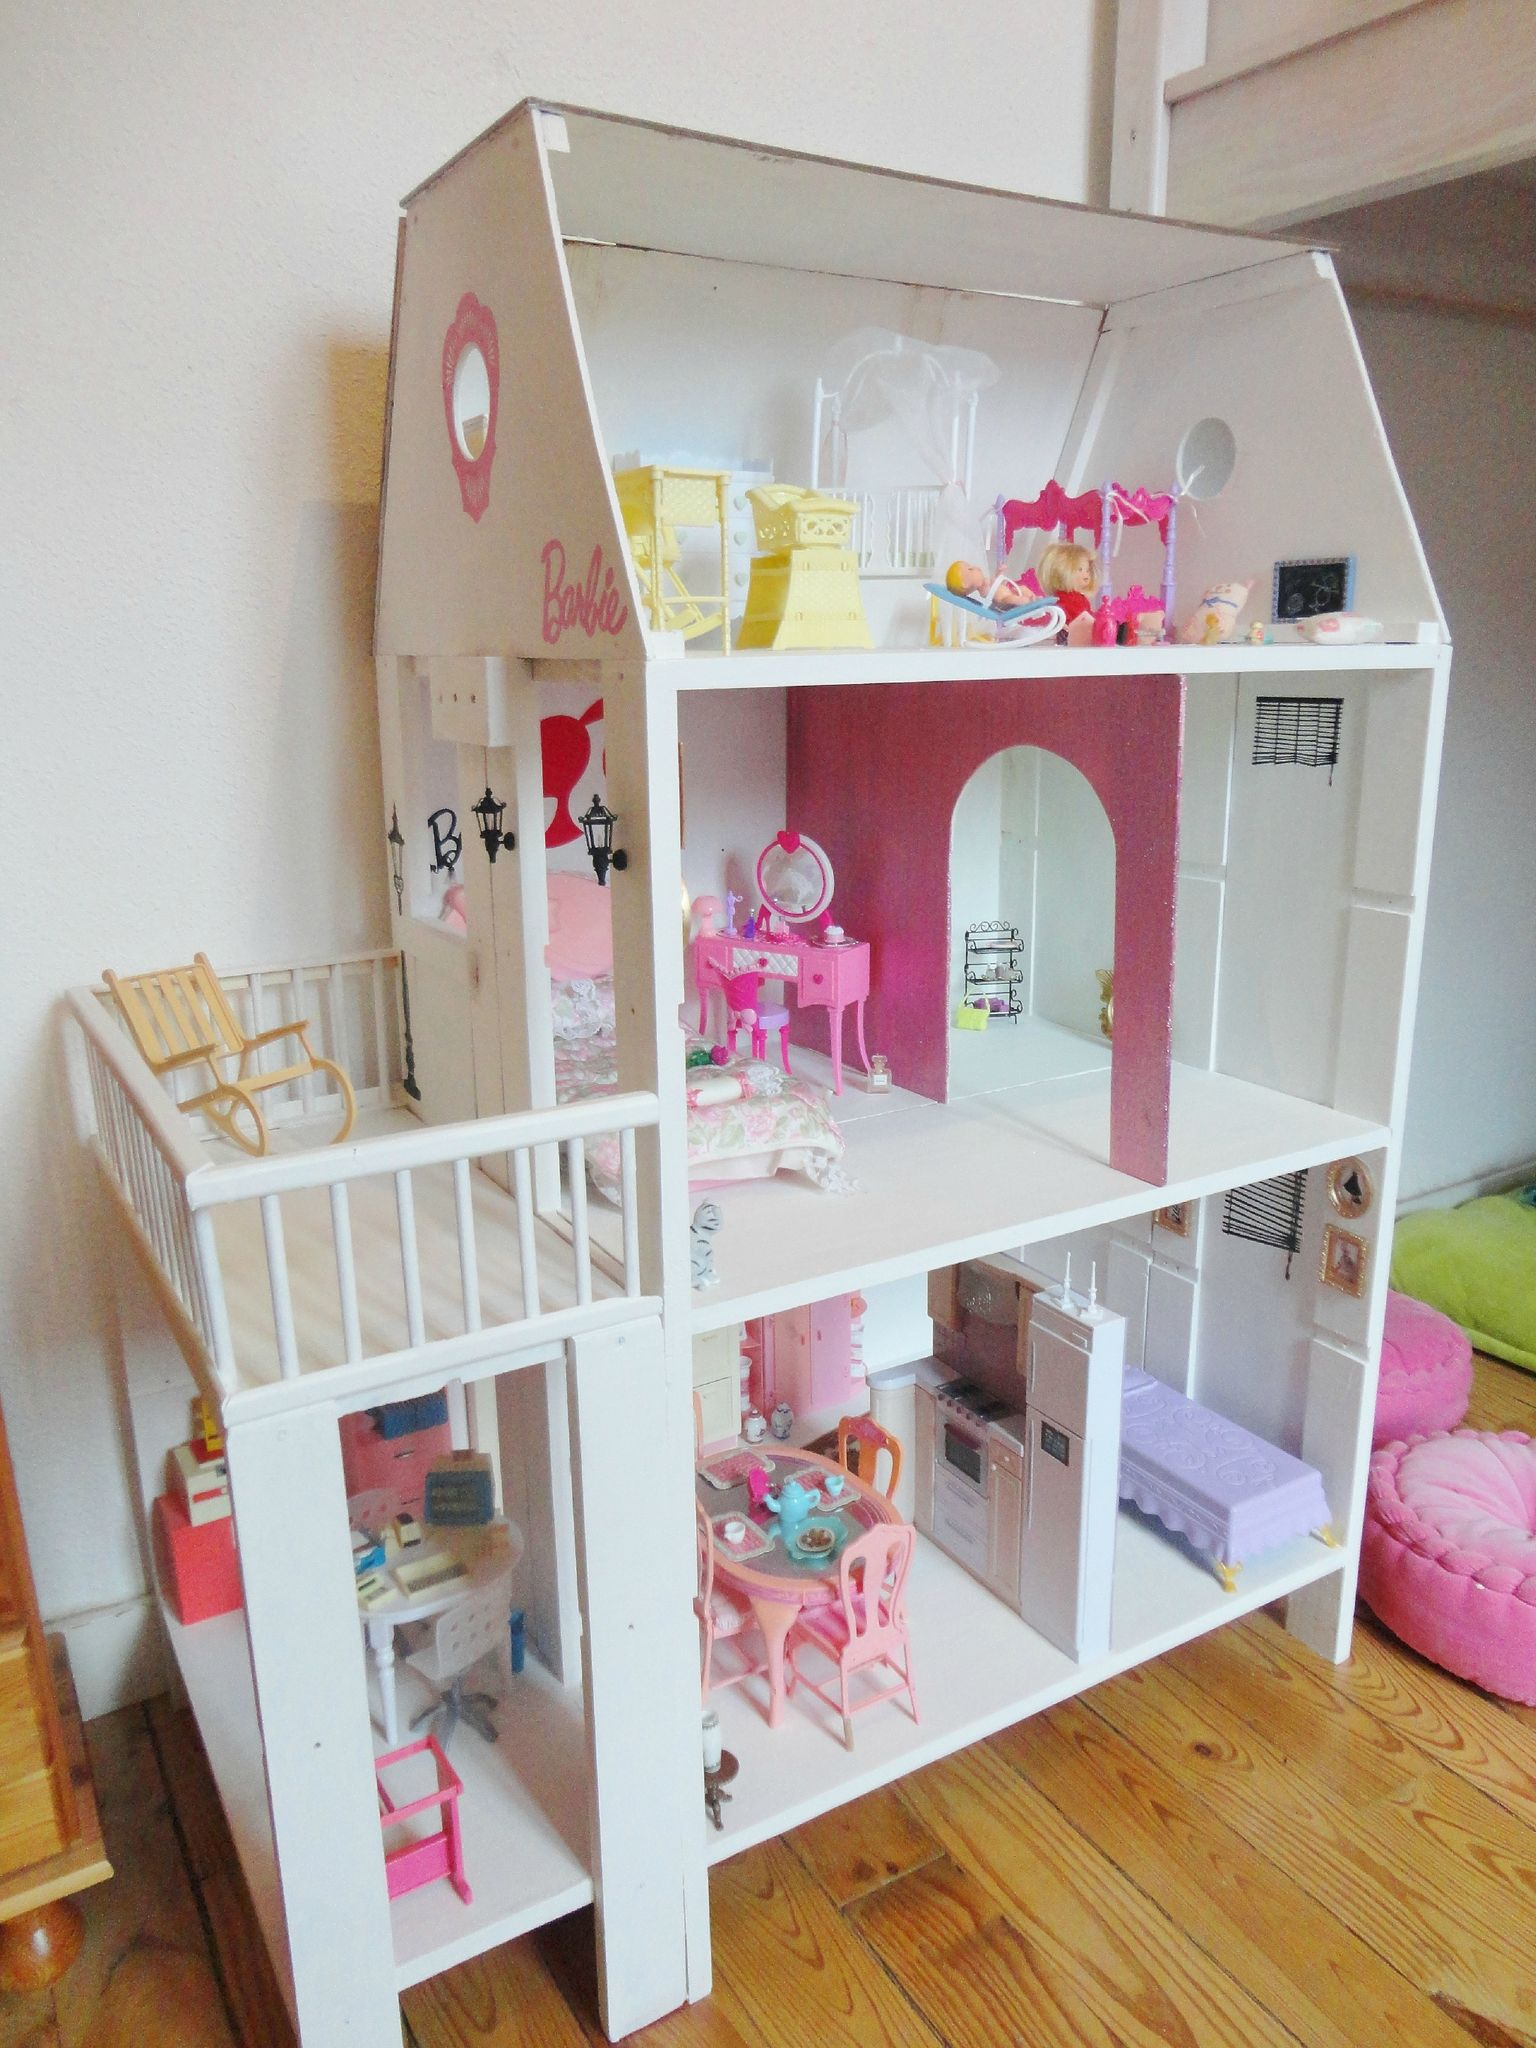 faire une maison de barbie en bois. Black Bedroom Furniture Sets. Home Design Ideas